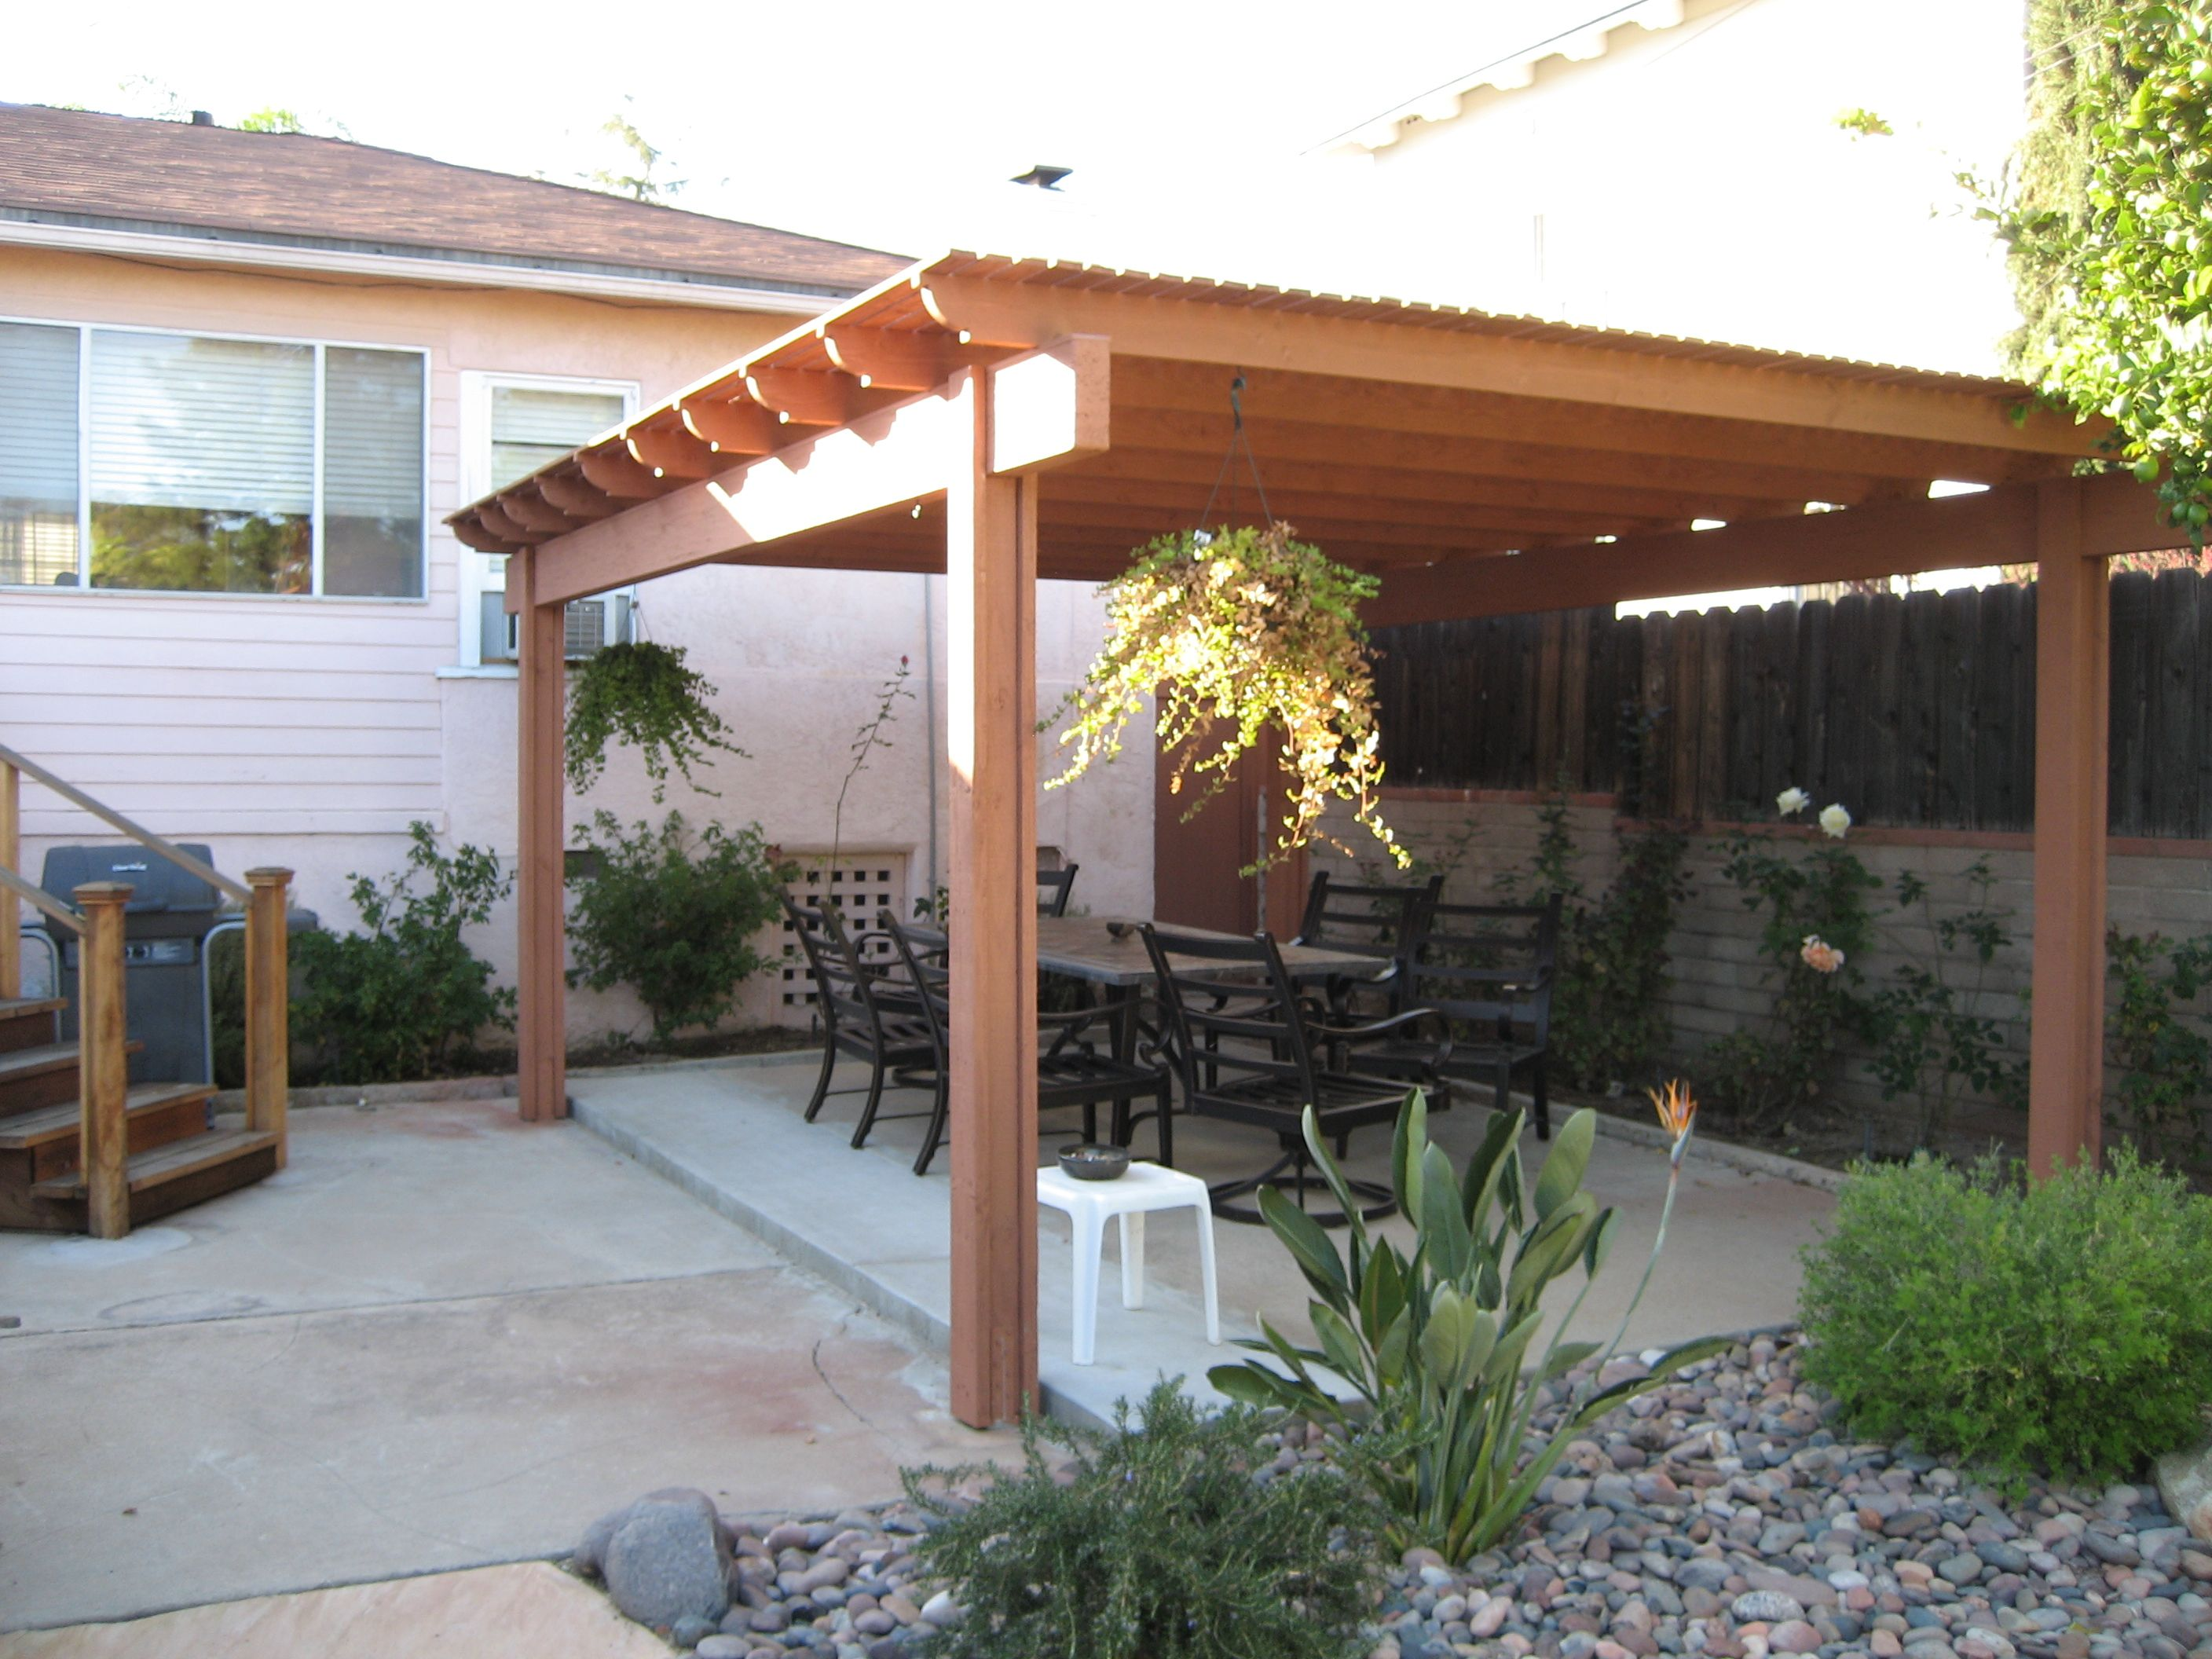 Best Covered Patio Design Ideas 2013 Best Patio Paver Design